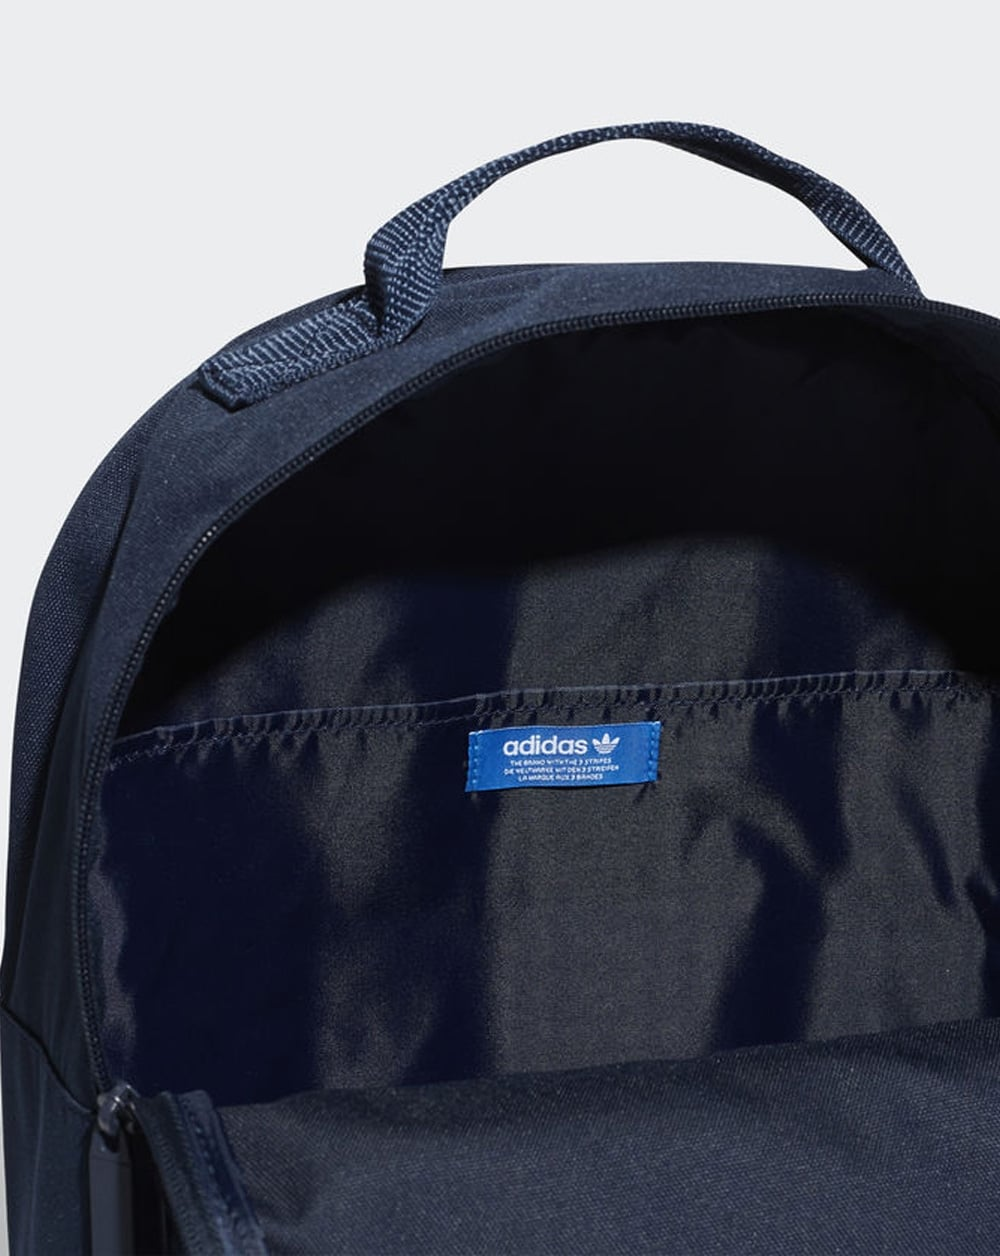 eacd62ad0a5c Adidas Originals Classic Trefoil Backpack Navy